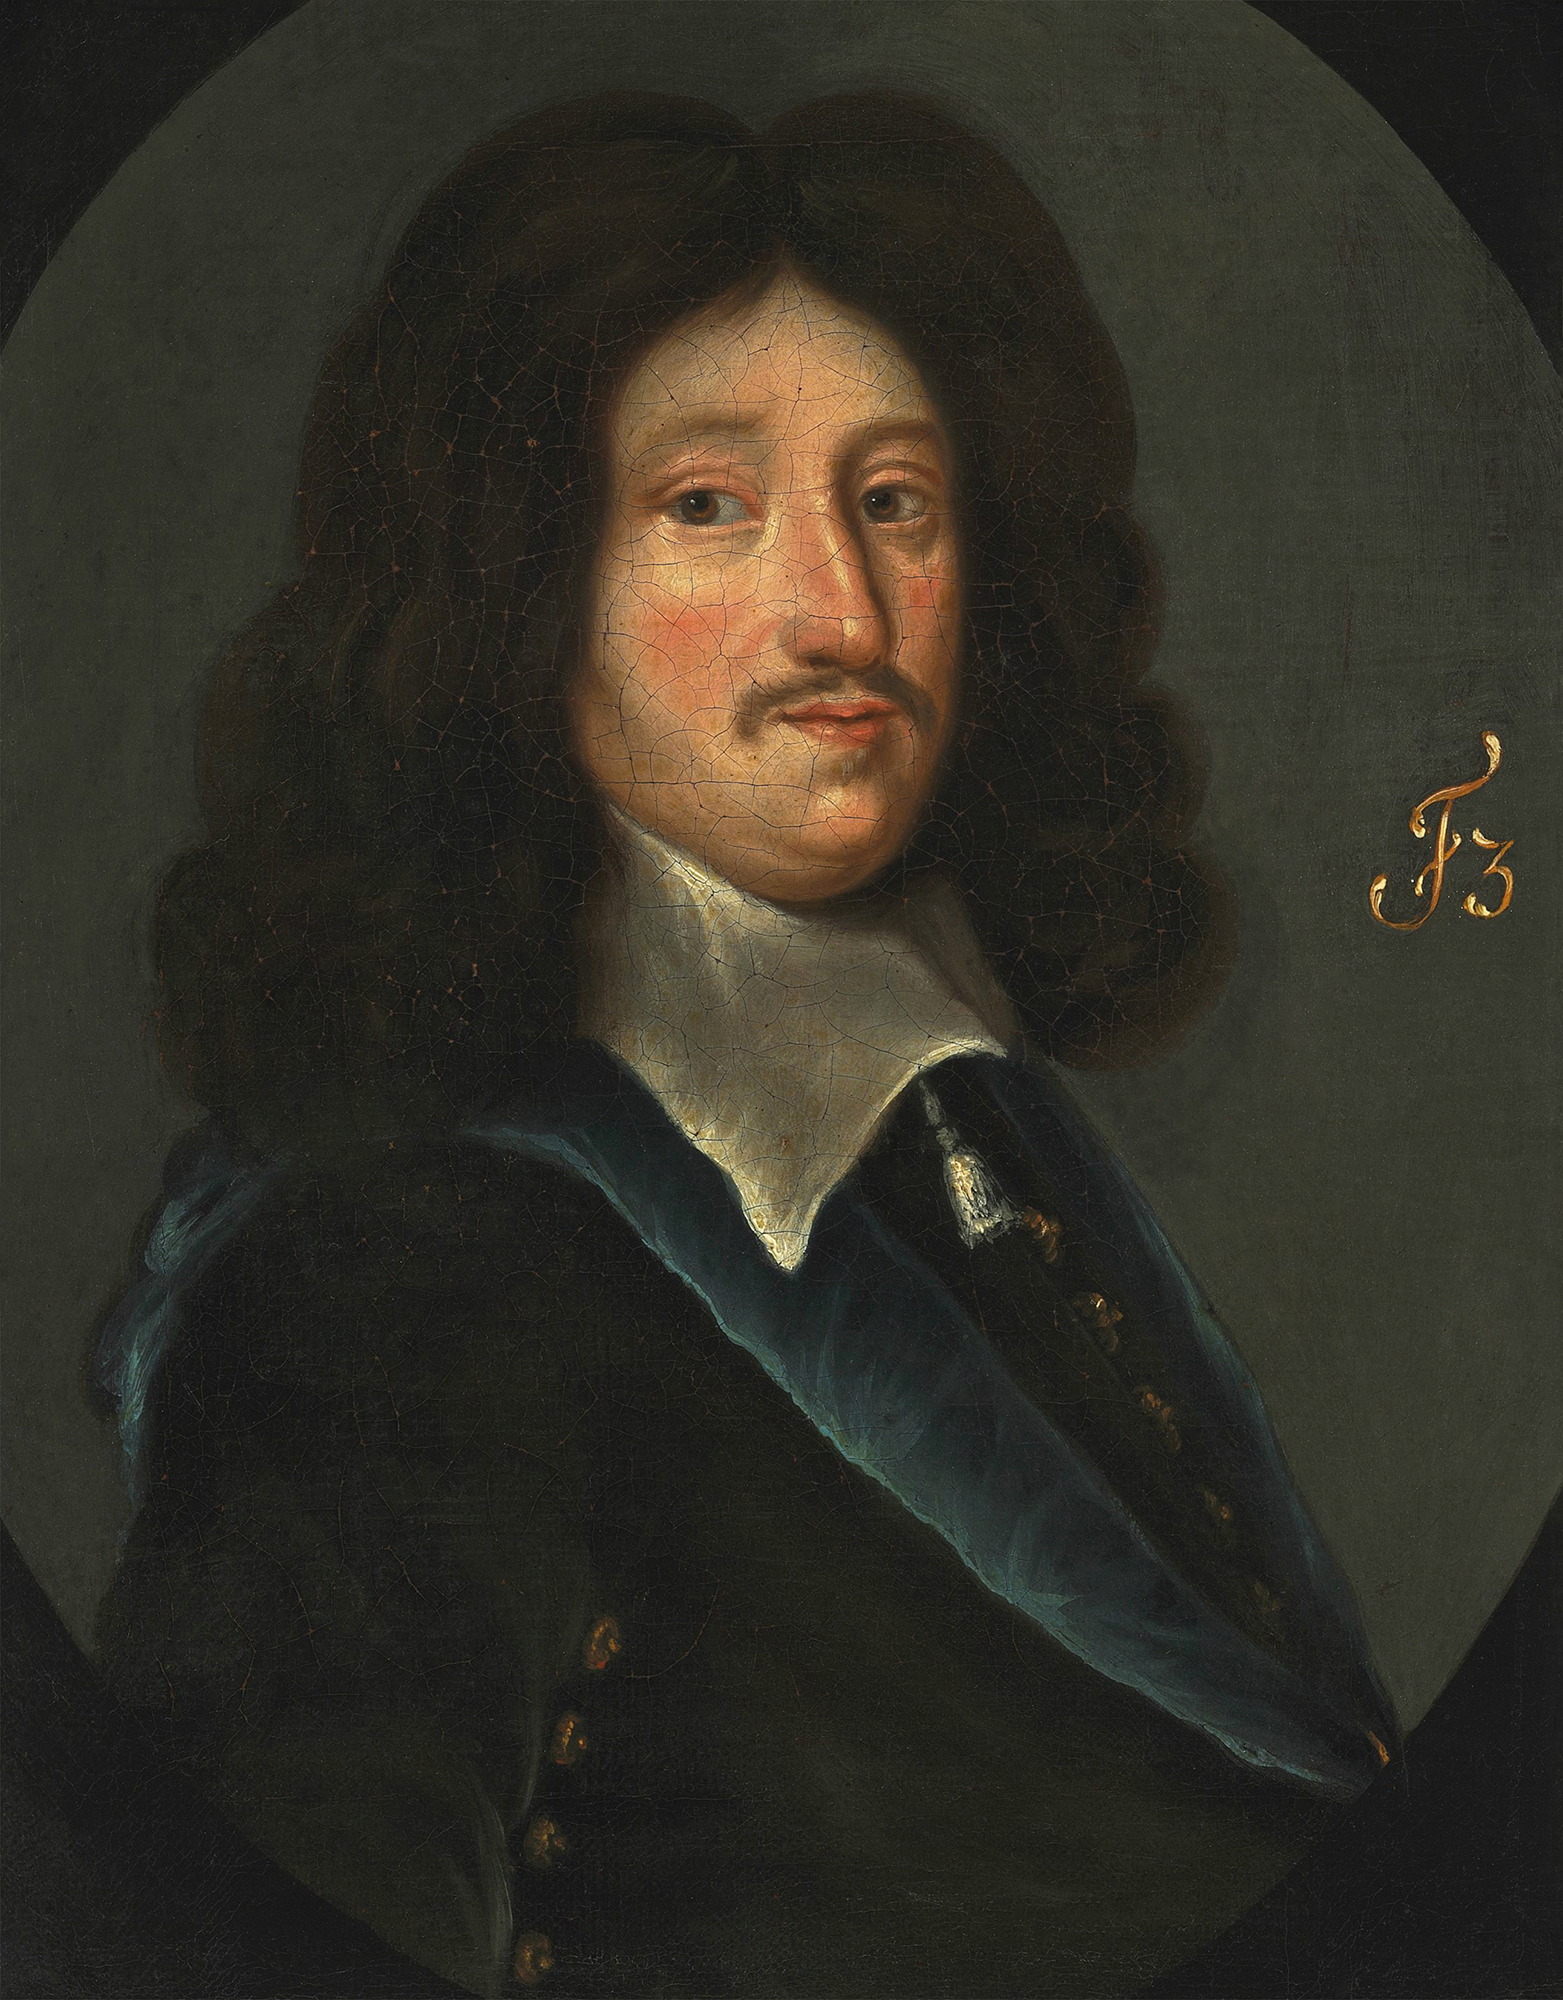 Portrait of Frederick III (1609-1670), King of Denmark and Norway, Duke of Holstein and Duke of Schleswig (1648-1670), Count of Oldenburg (1667-1670) | Portraits of Kings